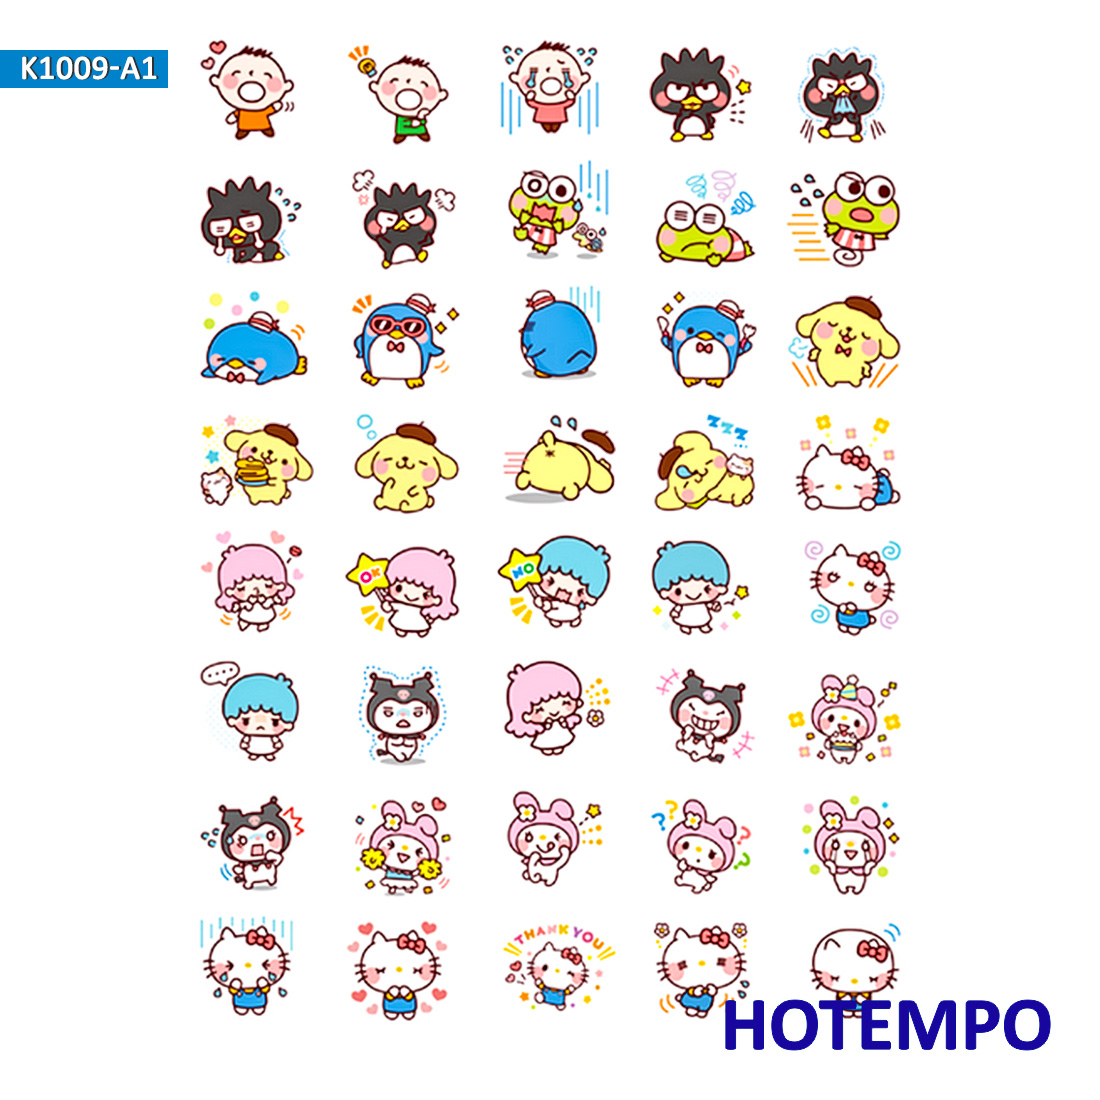 Sanrio Melody Kuromi Stickers For Girl Children Kids Gift DIY Letter Diary Scrapbooking Stationery Pegatinas  Stickers